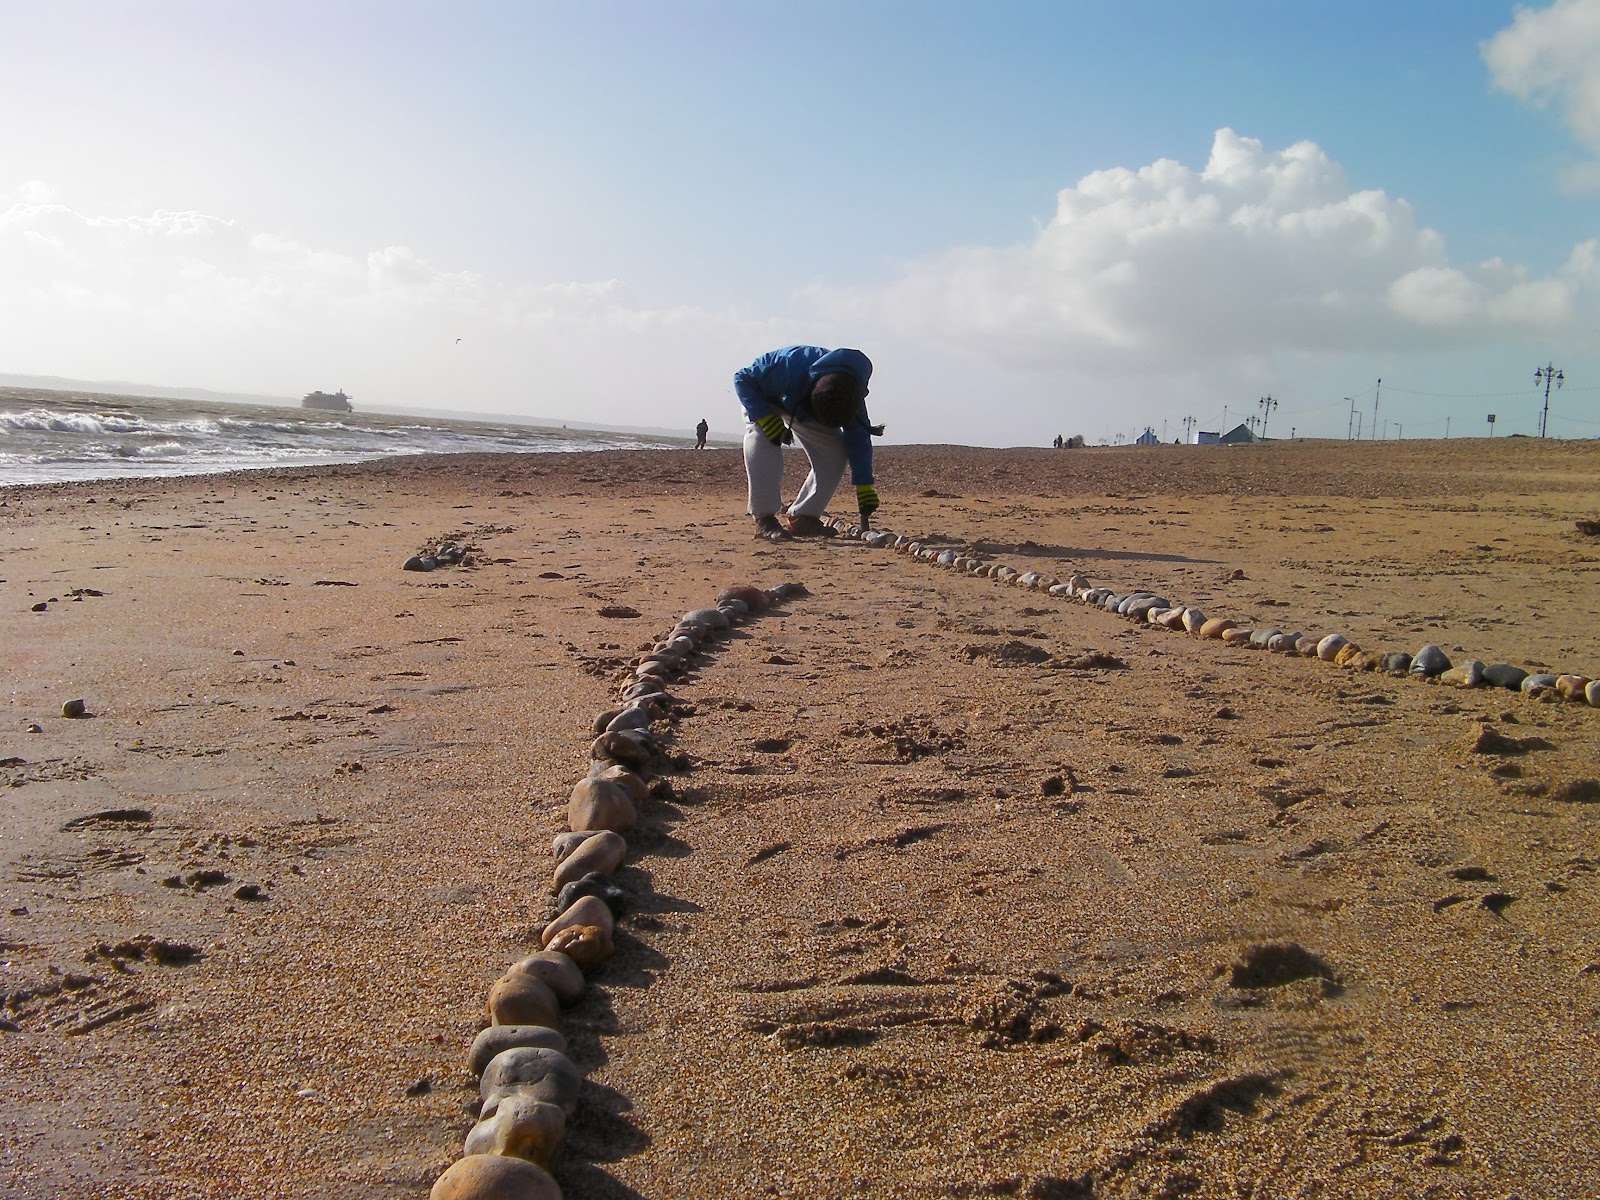 southsea beach with shingle stones washed away by stormy weather